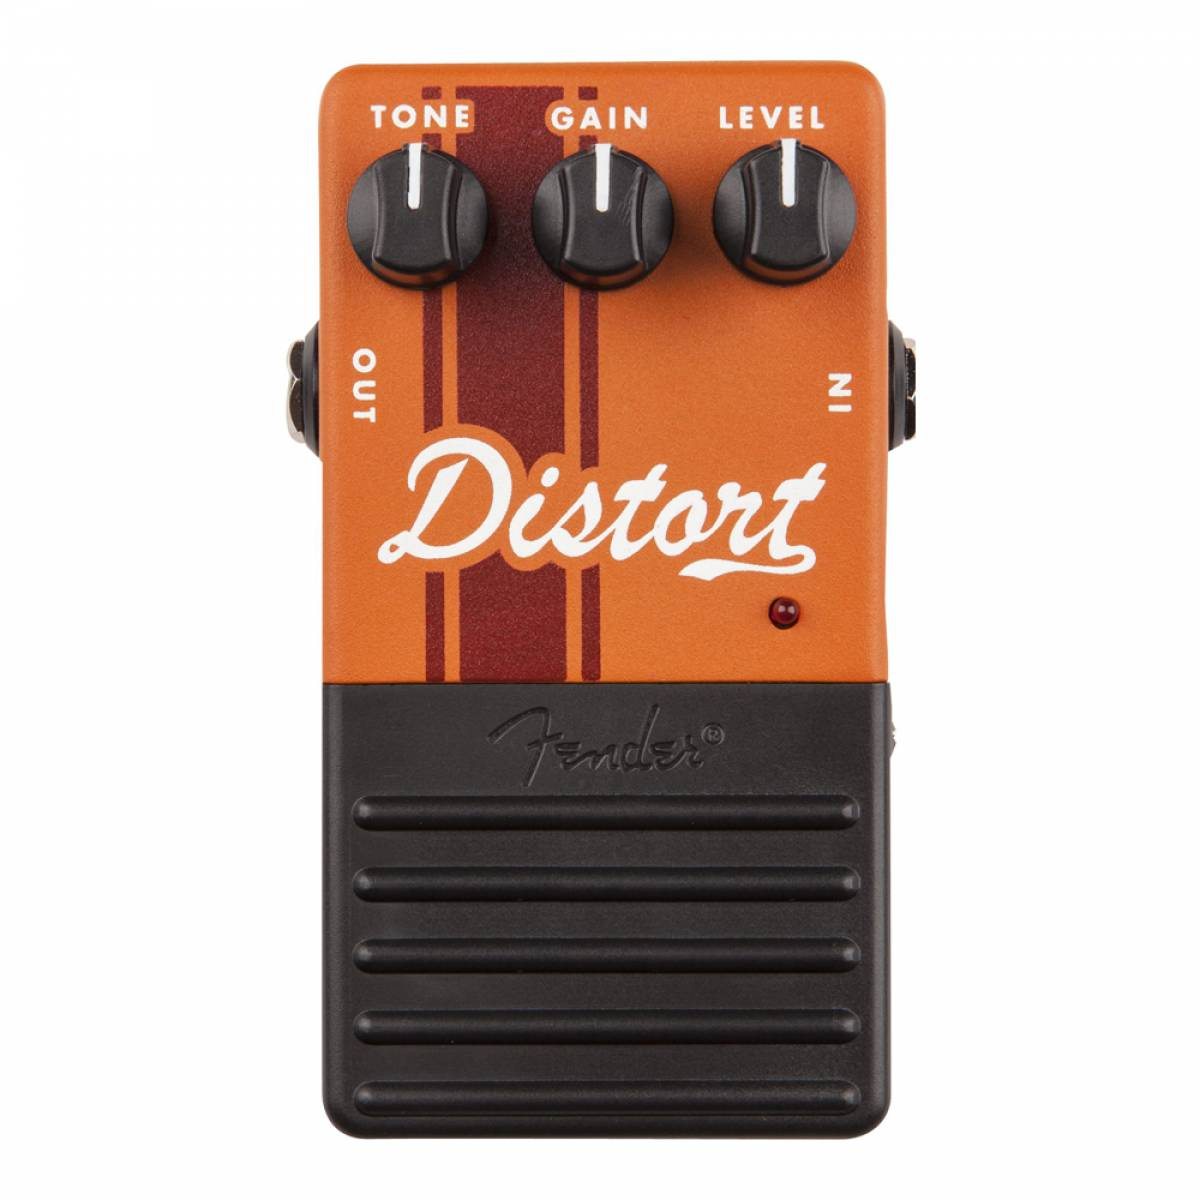 Pedal de Guitarra Fender Distort